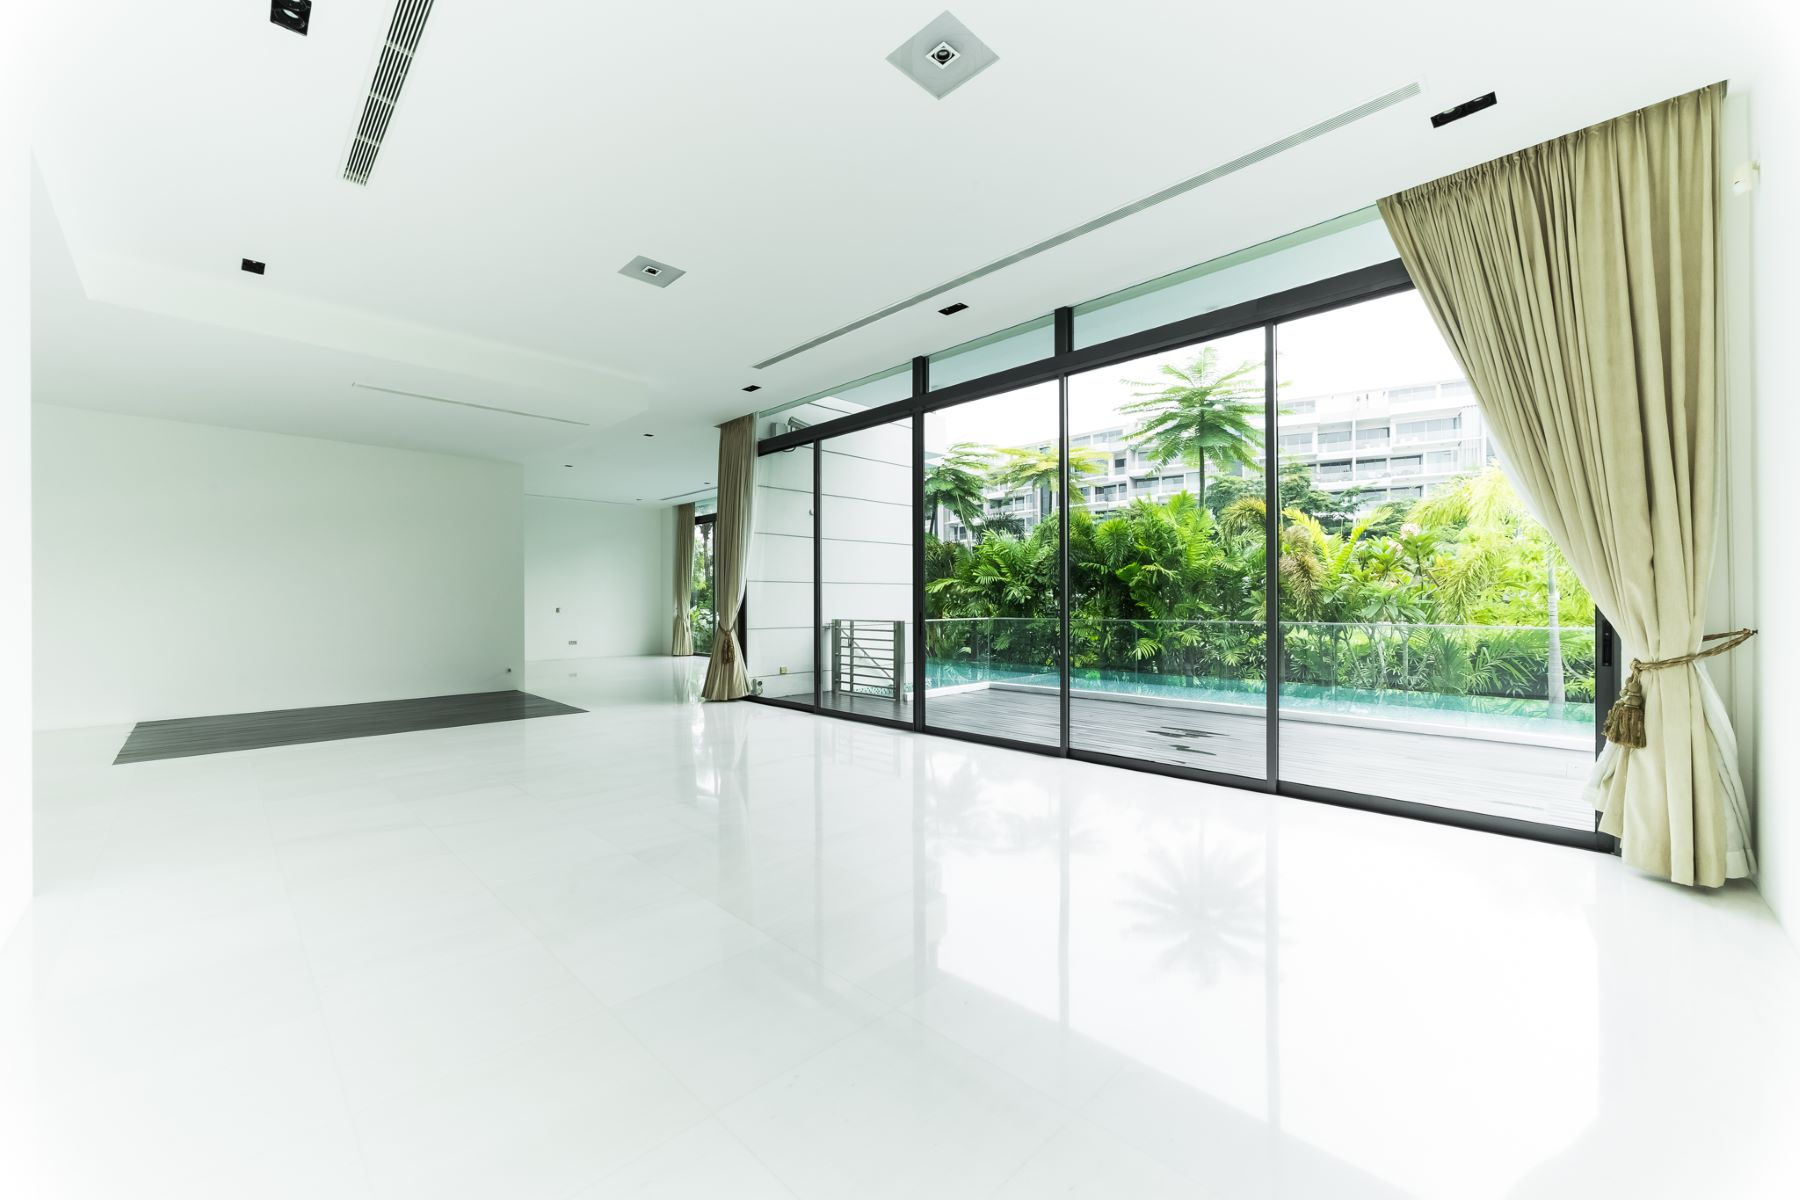 Additional photo for property listing at Treasure Island - Sentosa Cove Singapore, Cities In Singapore Singapore